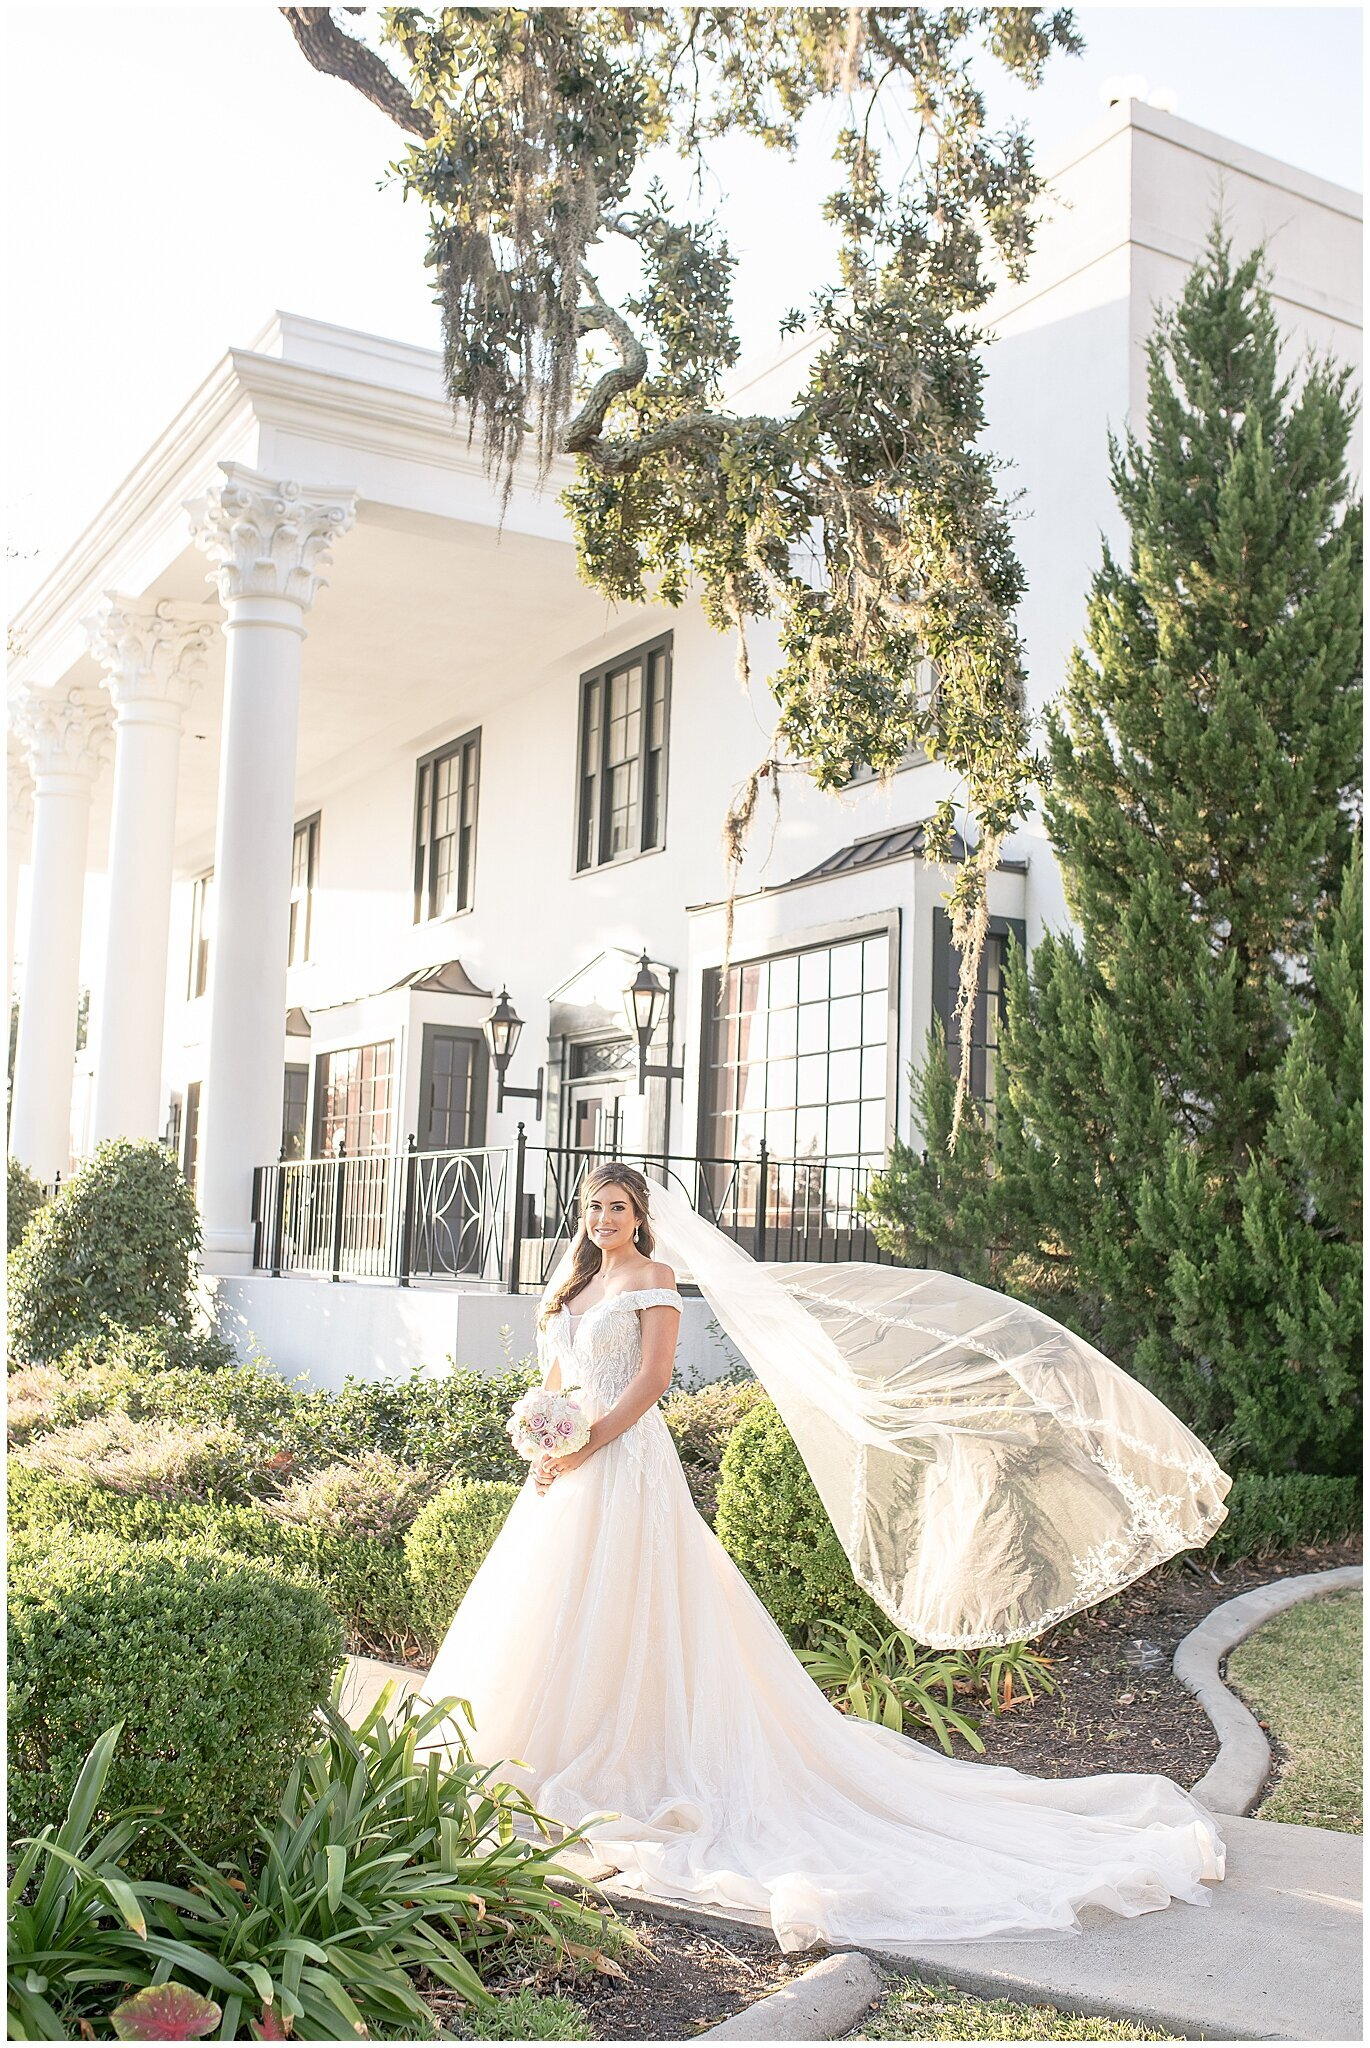 Bridal-Wedding-PortraitsThe-White-House-Hotel-Biloxi1237